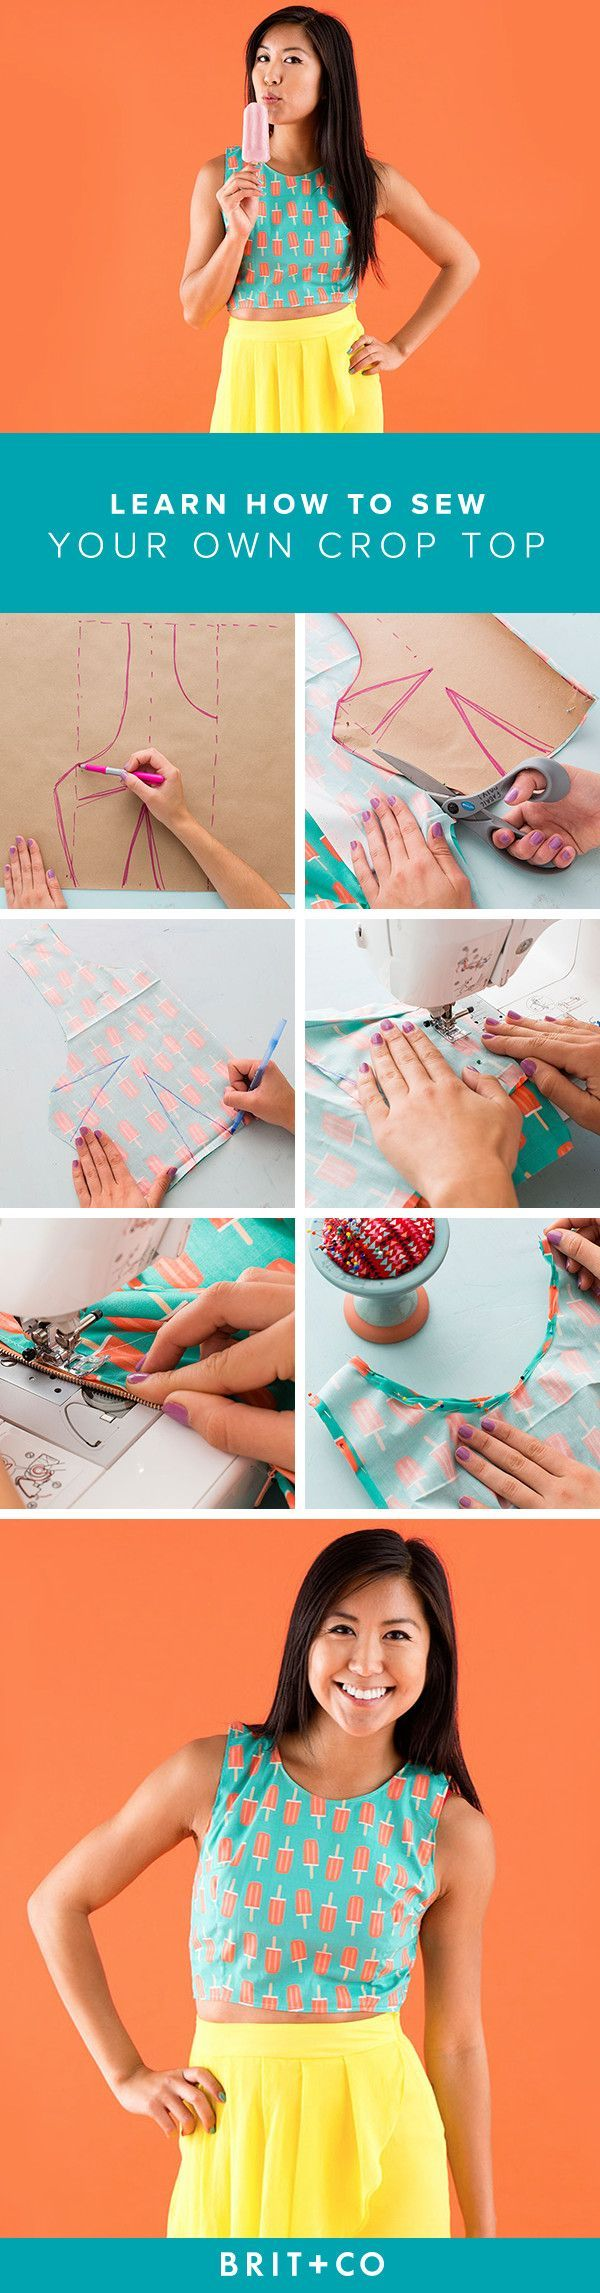 Hone your sewing skills with this crop top DIY tutorial. Find more sewing tutorials at http://www.sewinlove.com.au/tag/free-sewing-pattern/